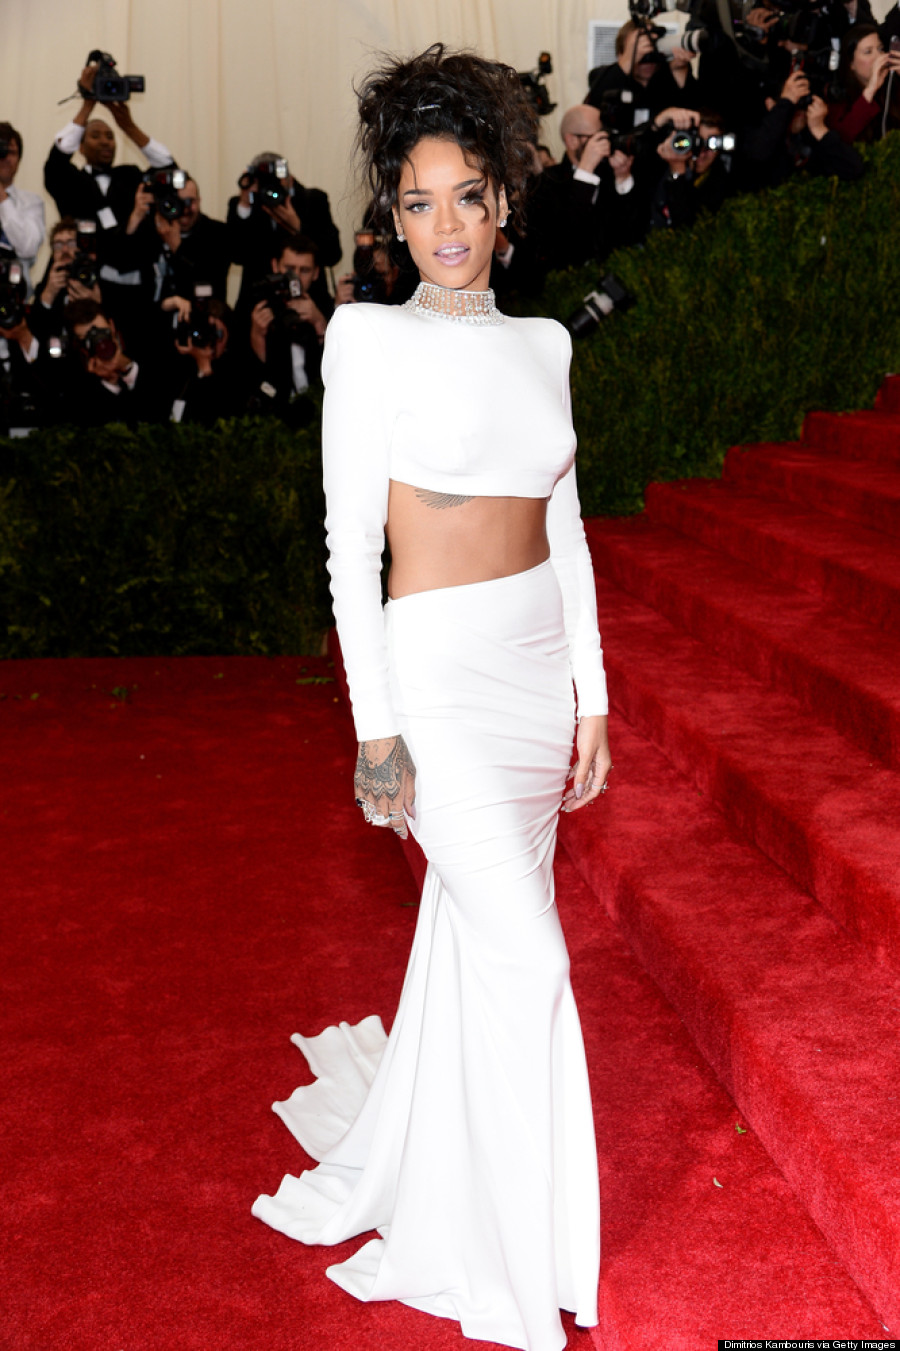 From The 2014 Met Gala